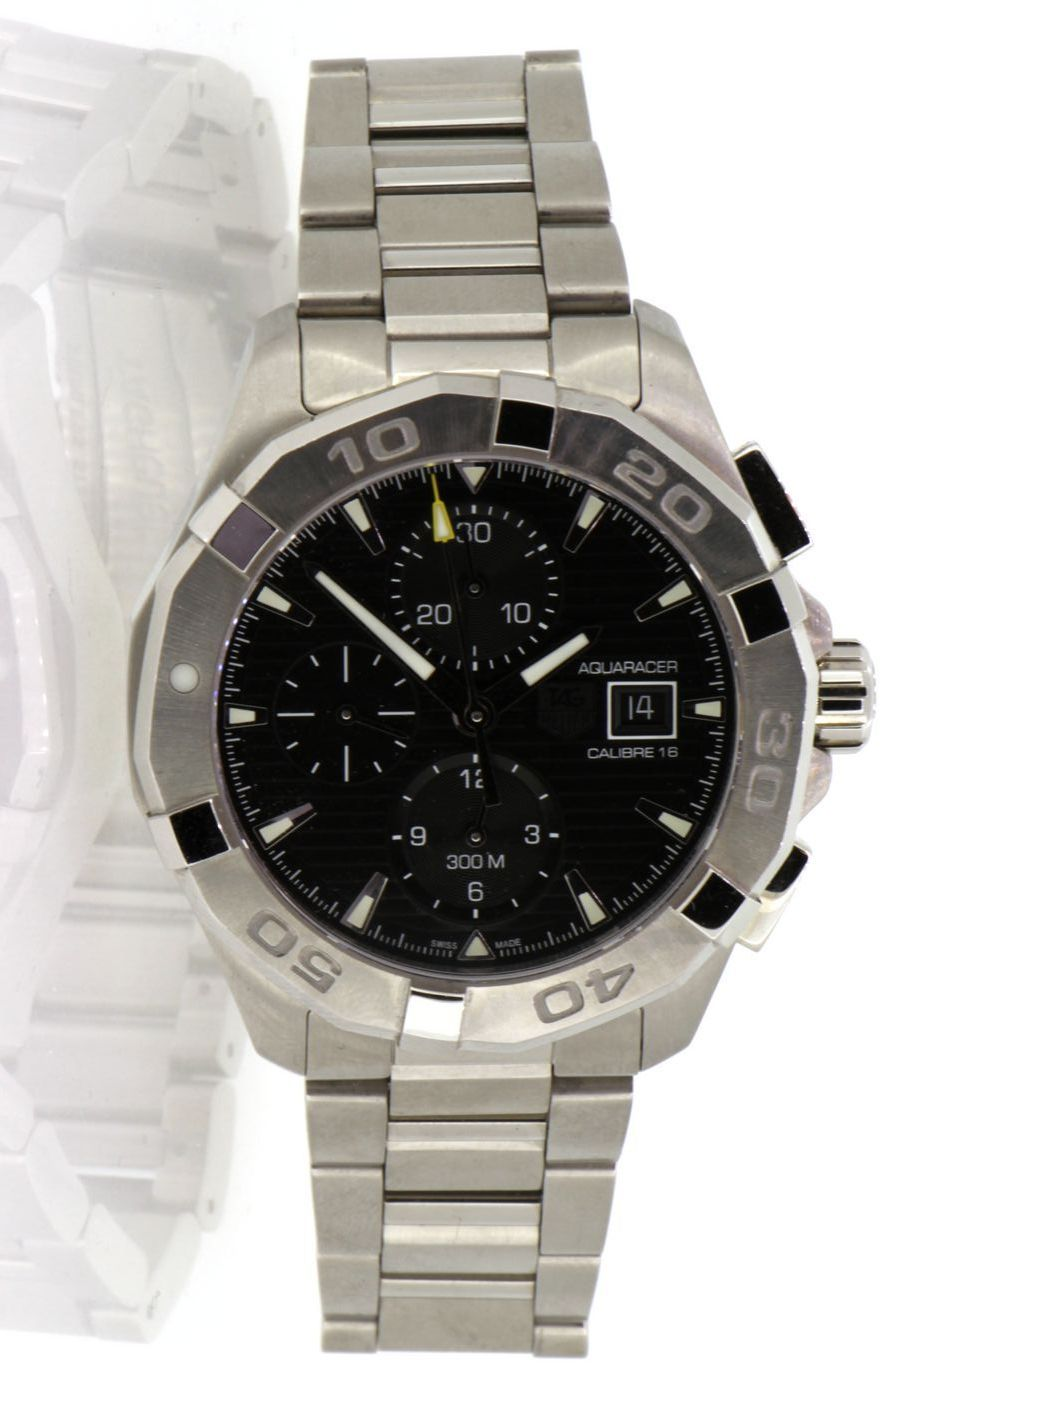 09033c7c0c1 Tag Heuer Aquaracer Chronograph Automatic Men s Watch CAY2110.BA0927 ...